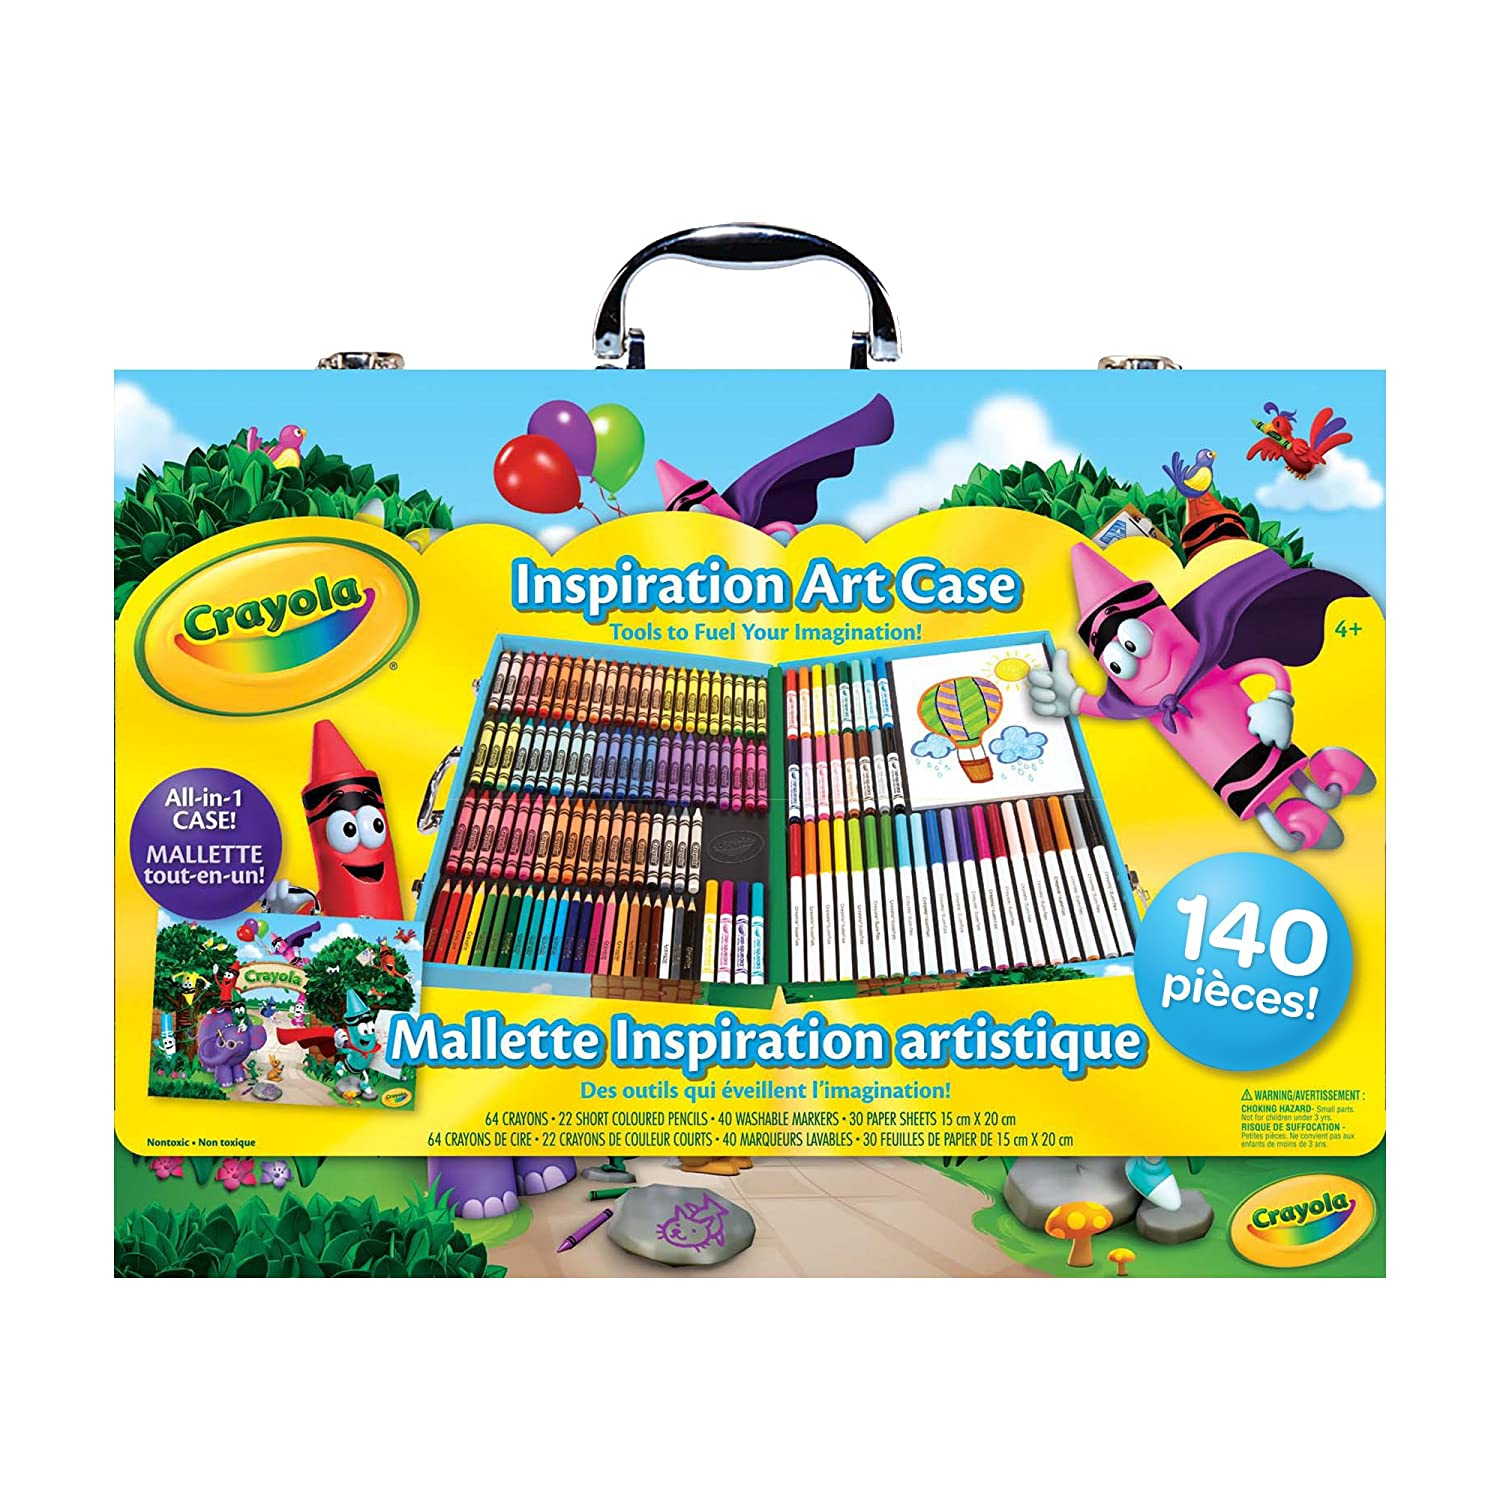 $14.95 (Was $29.99) Crayola Inspiration Art Case; 140 Art Supplies, Crayons, Colored Pencils, Washable markers, Paper, Portable Case